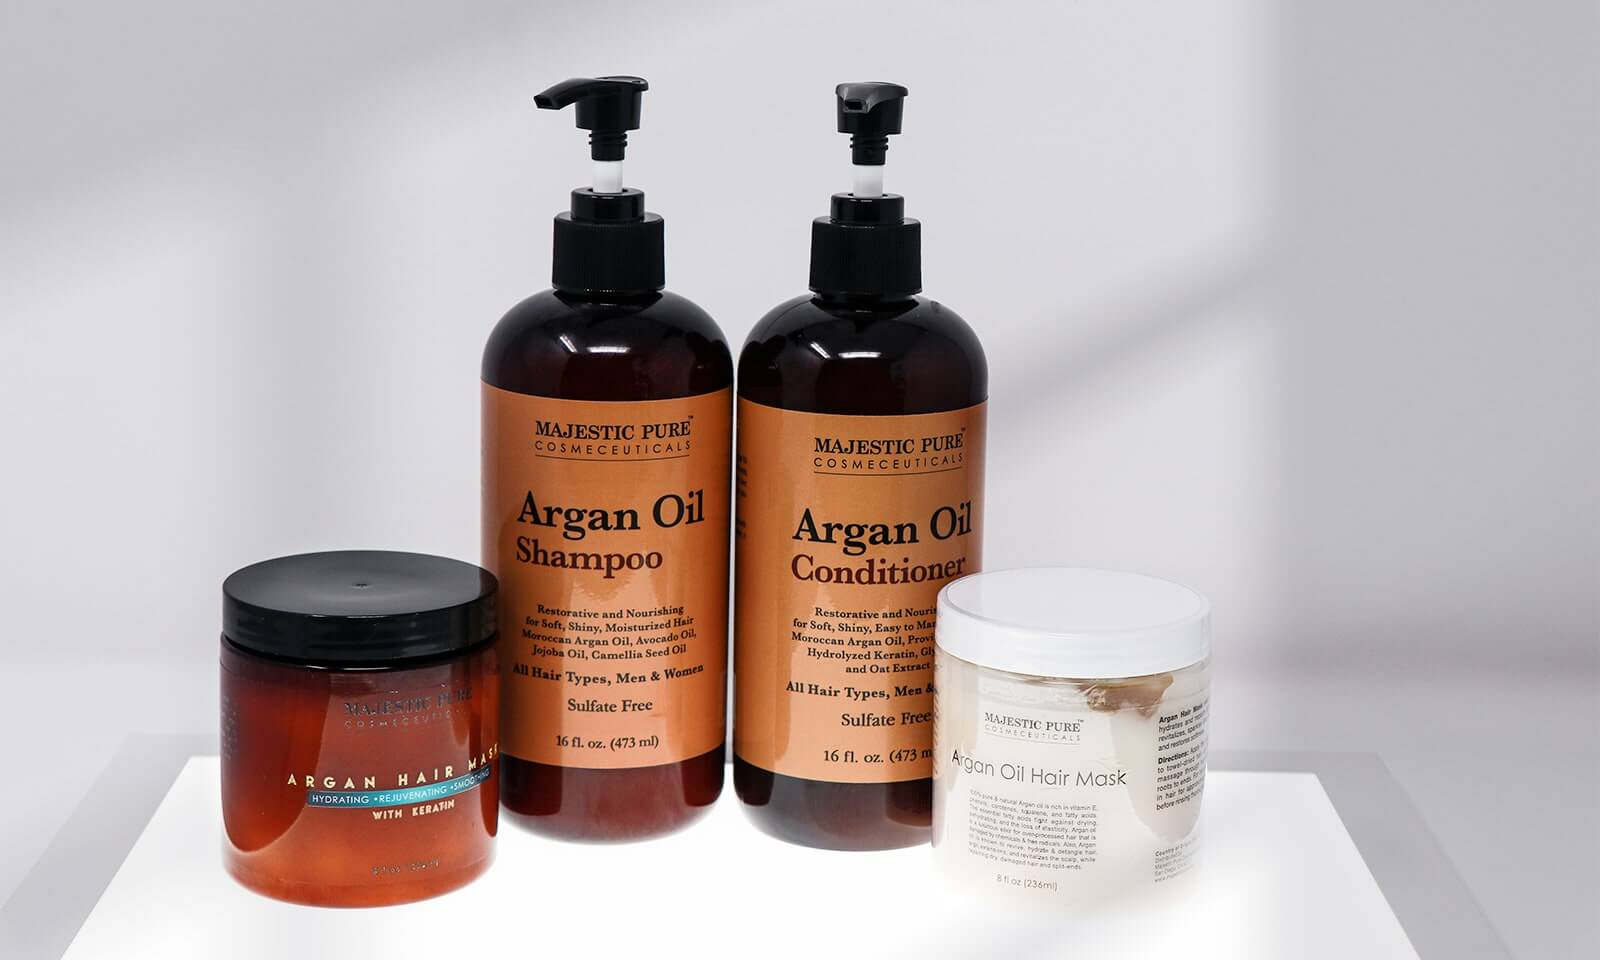 Majestic Pure Argan Oil products for hair includes hair masks, shampoo and conditioner